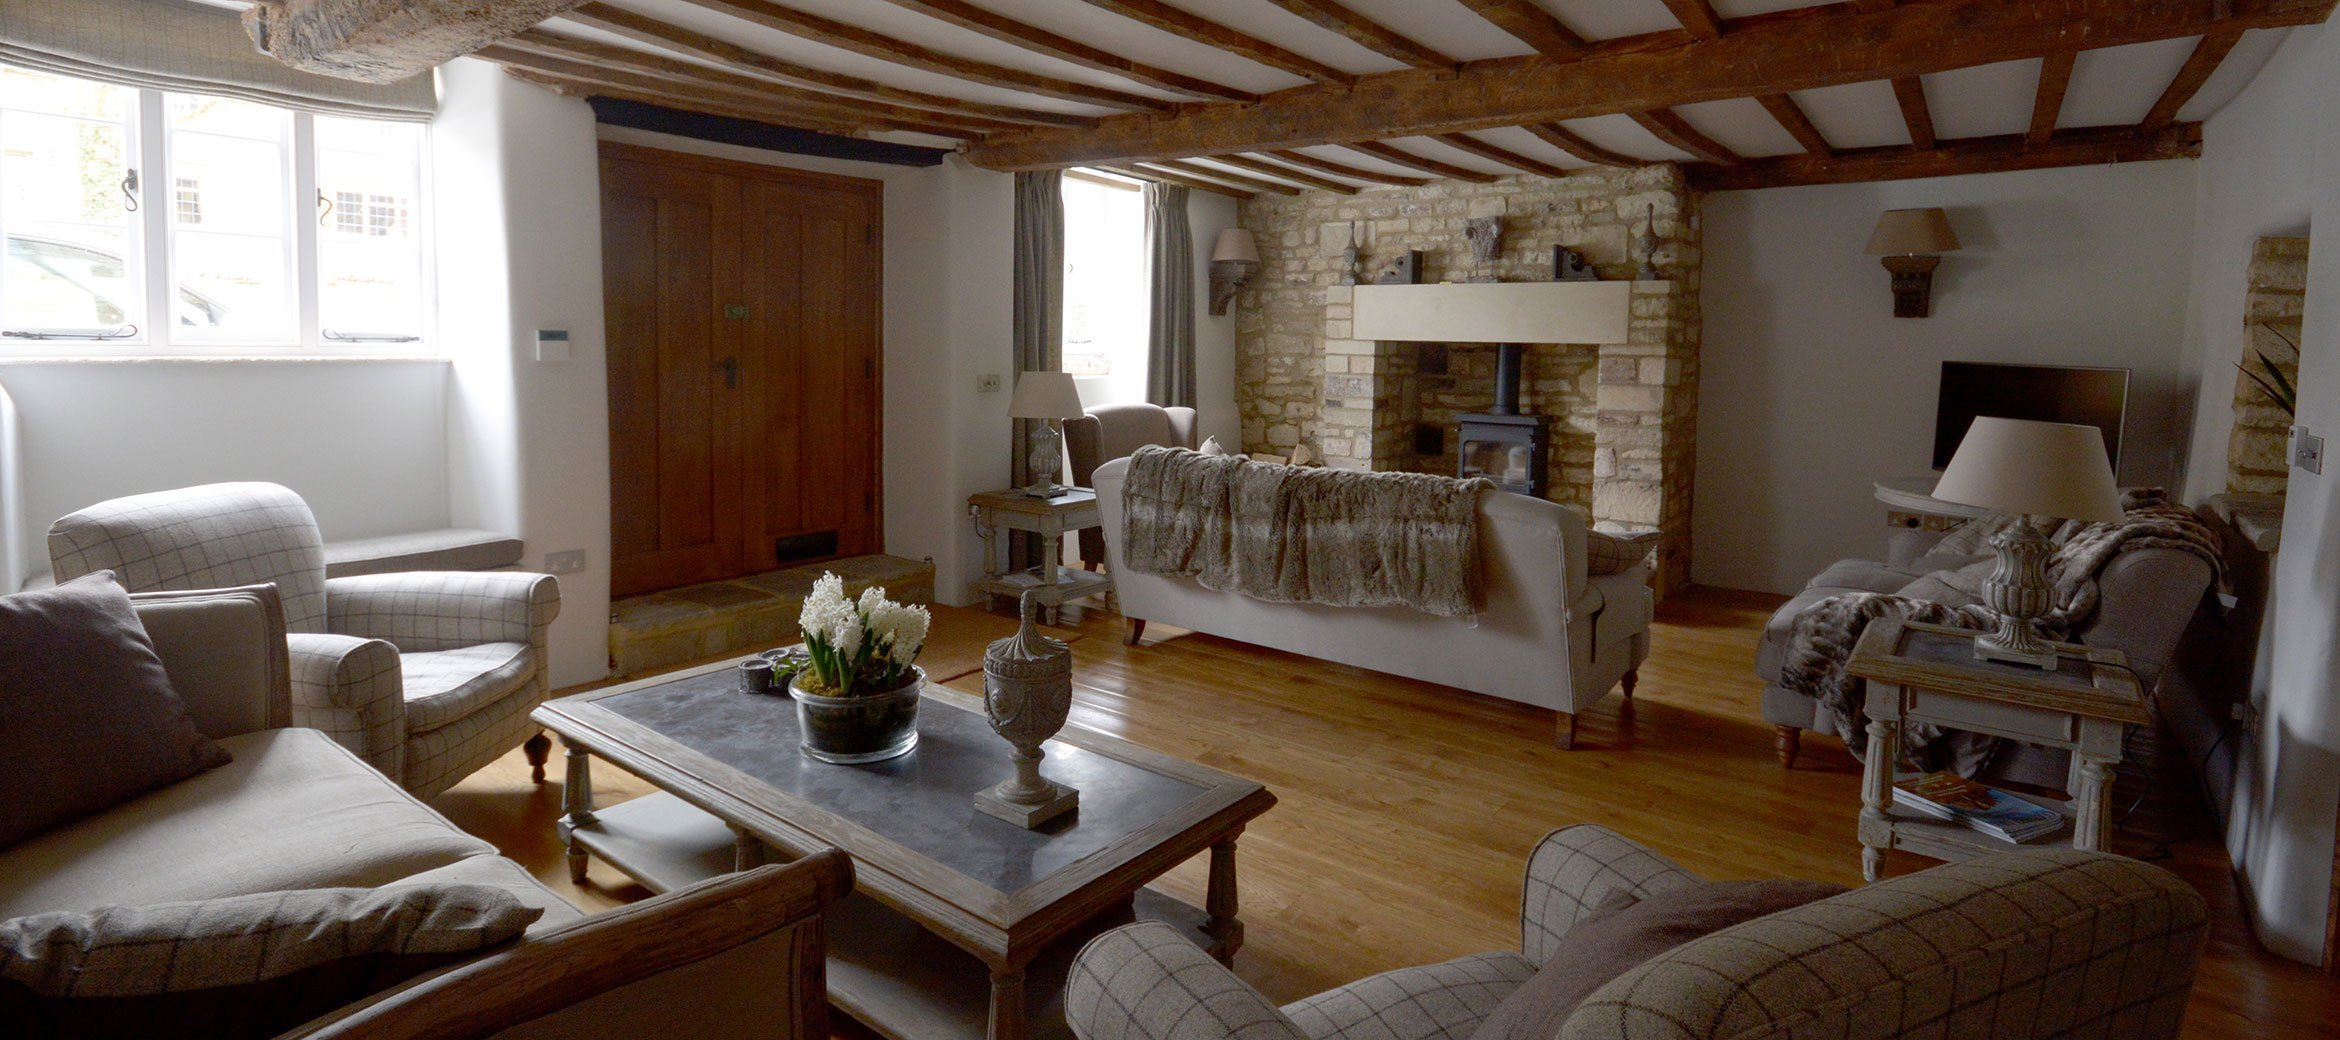 burford-cotswold-cottage-drawing-room-fireplace